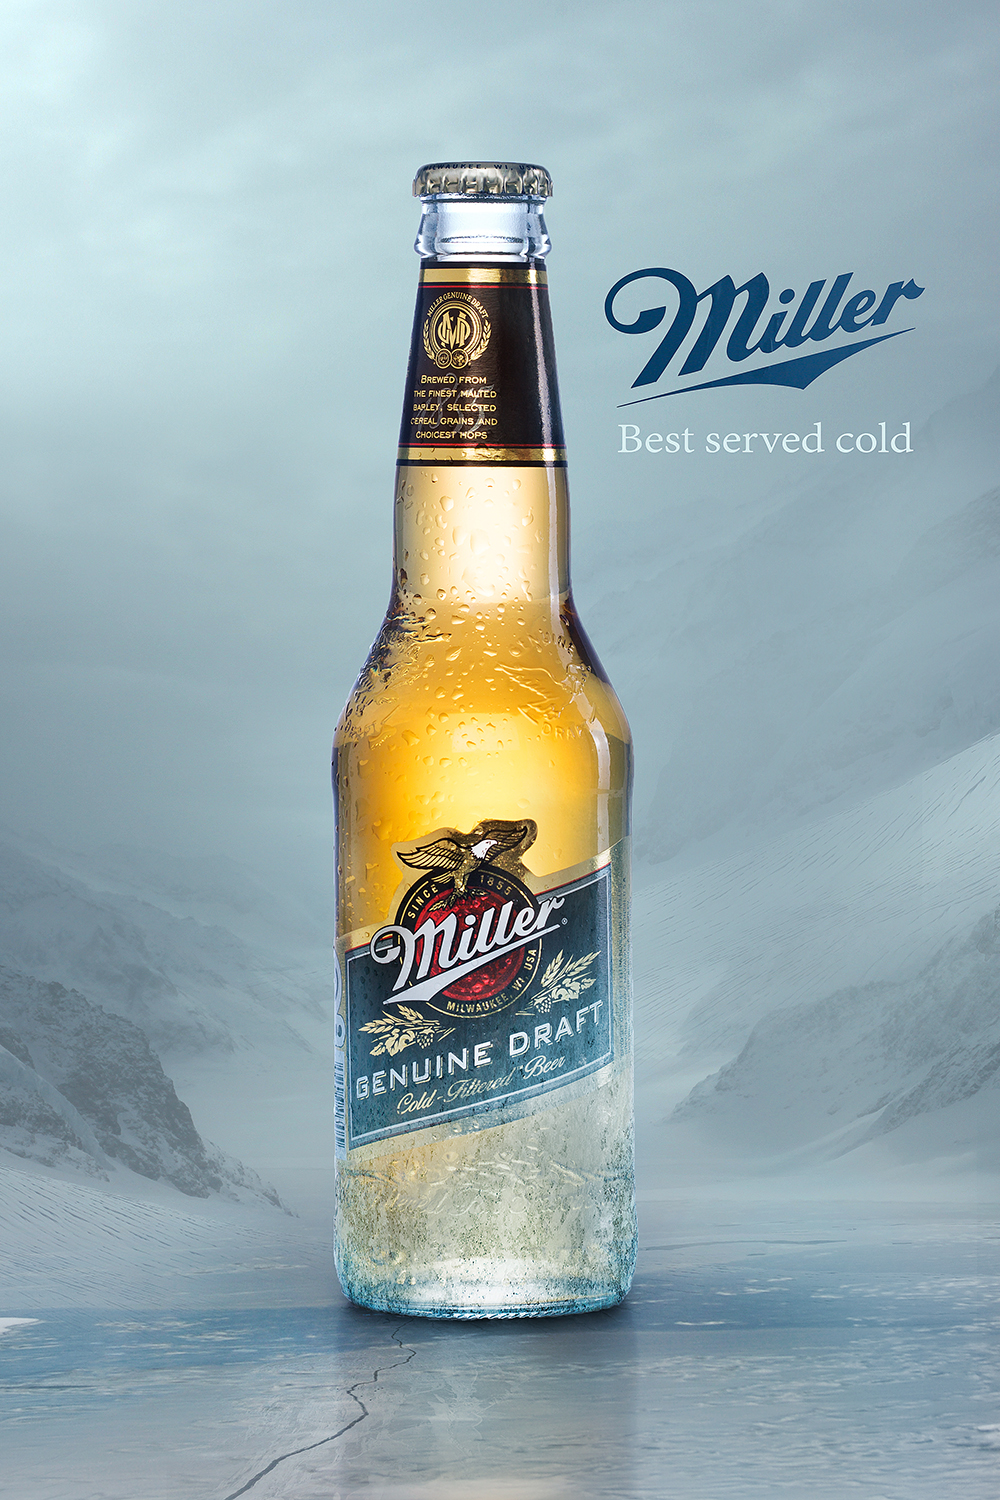 Miller - best served cold